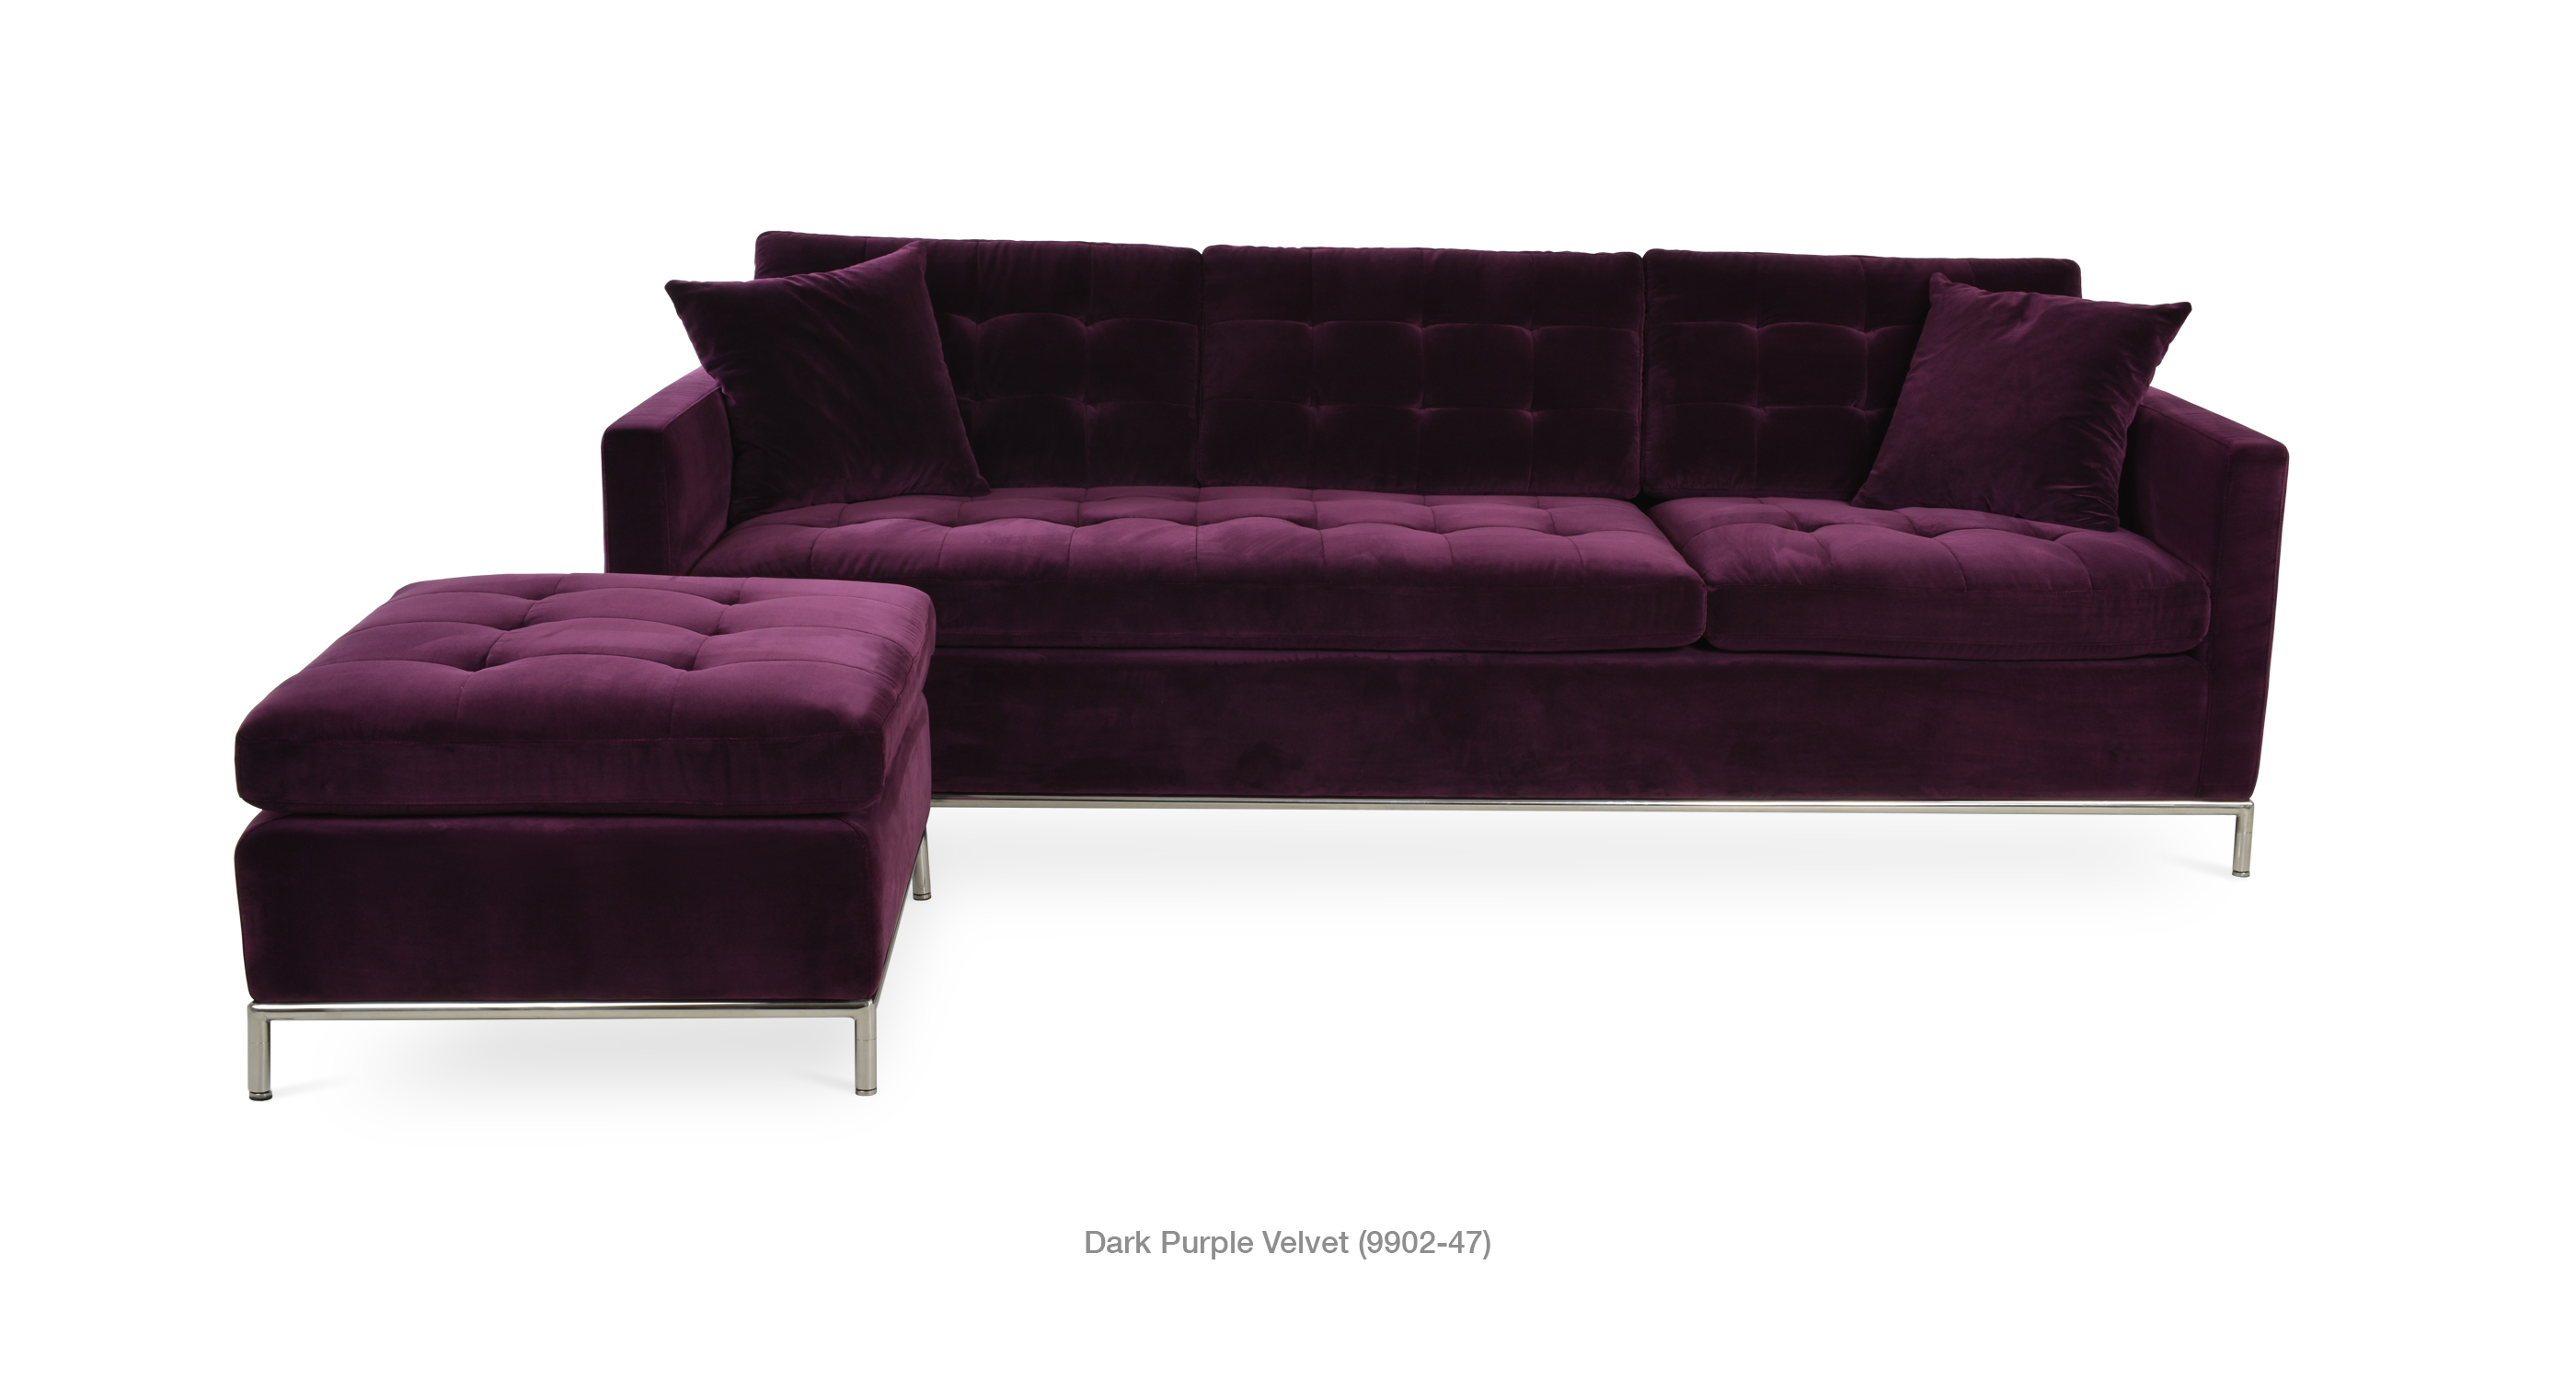 Phenomenal Taxim Contemporary Sectional Sofas Sohoconcept Ibusinesslaw Wood Chair Design Ideas Ibusinesslaworg